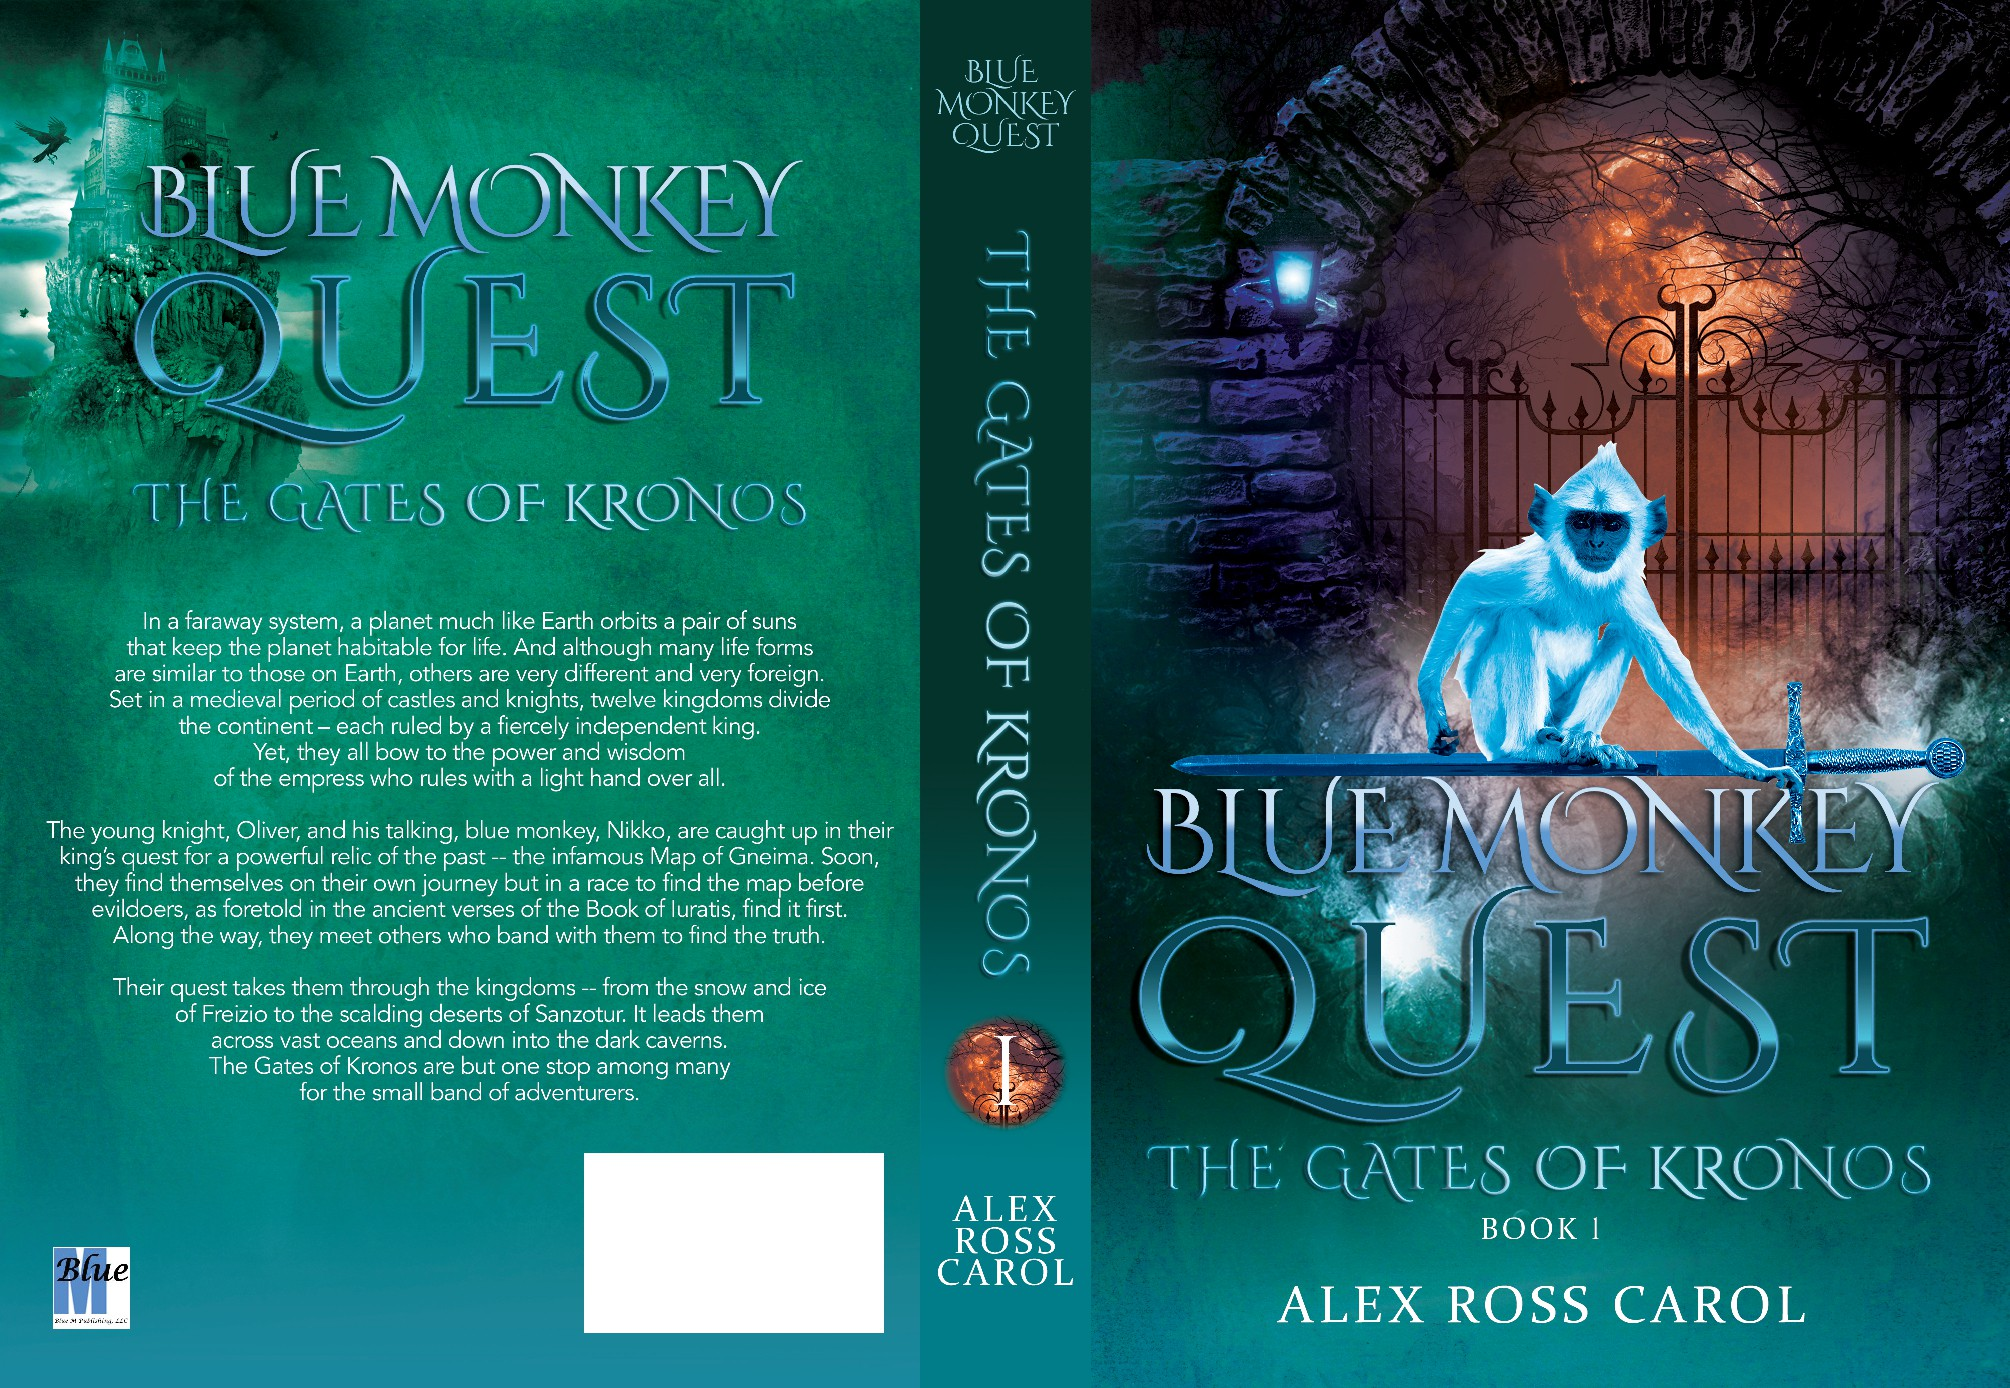 Need a unique/clean design: Young knight & talking blue monkey on fantasy quest. 1st of 3.